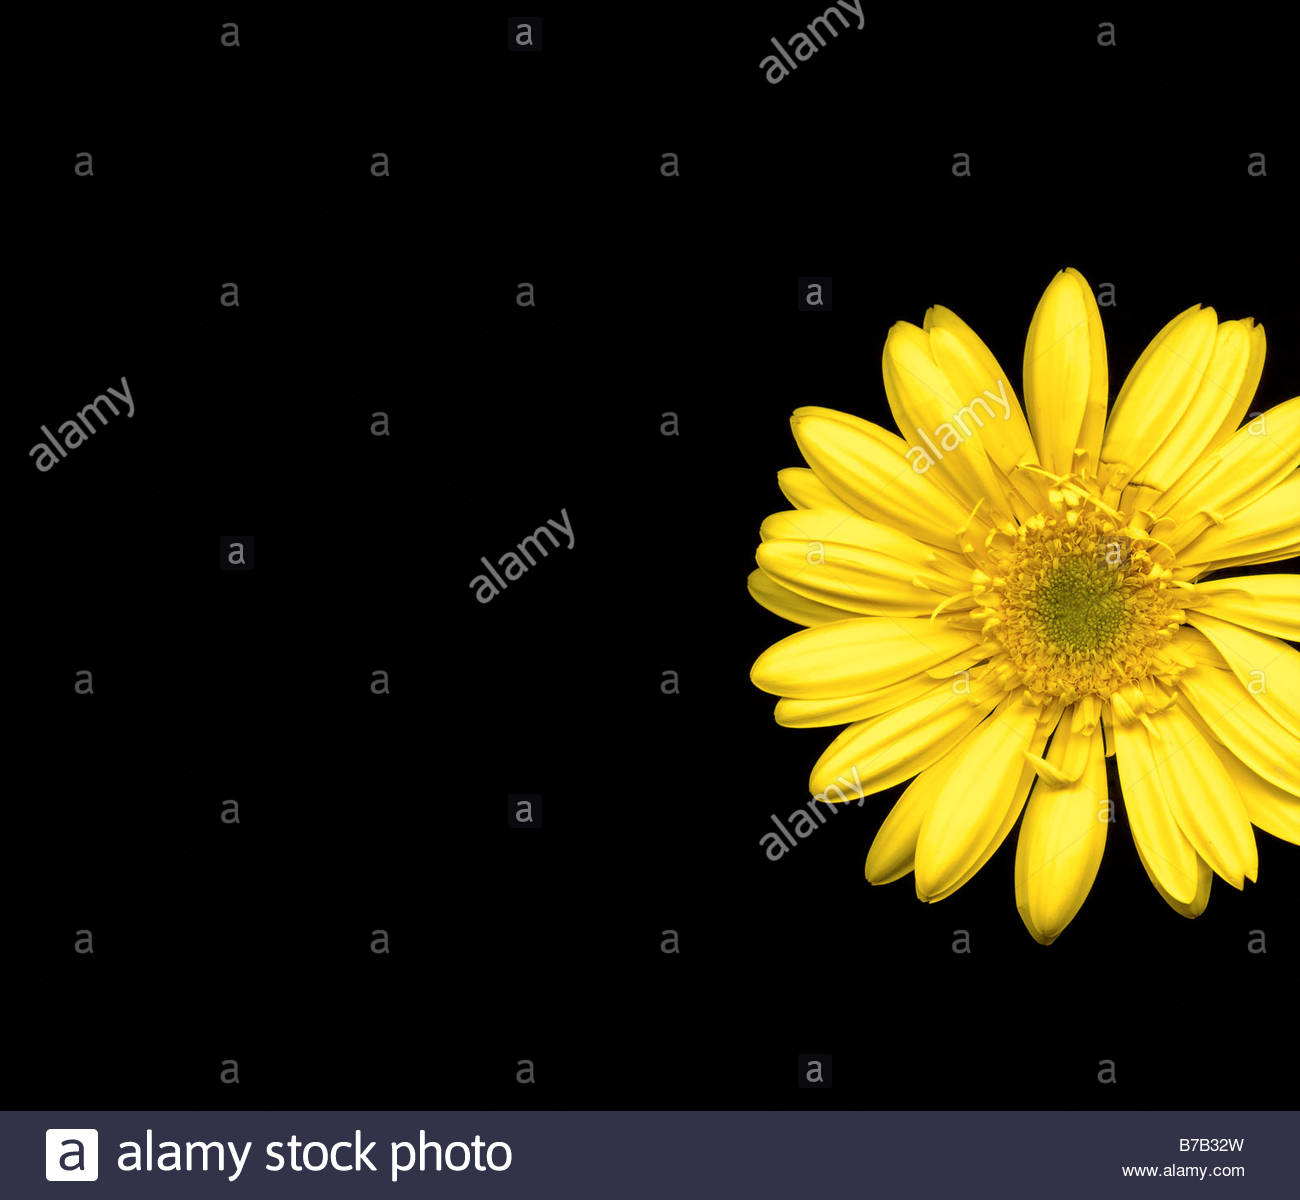 Studio shot of Gerber daisy - Stock Image